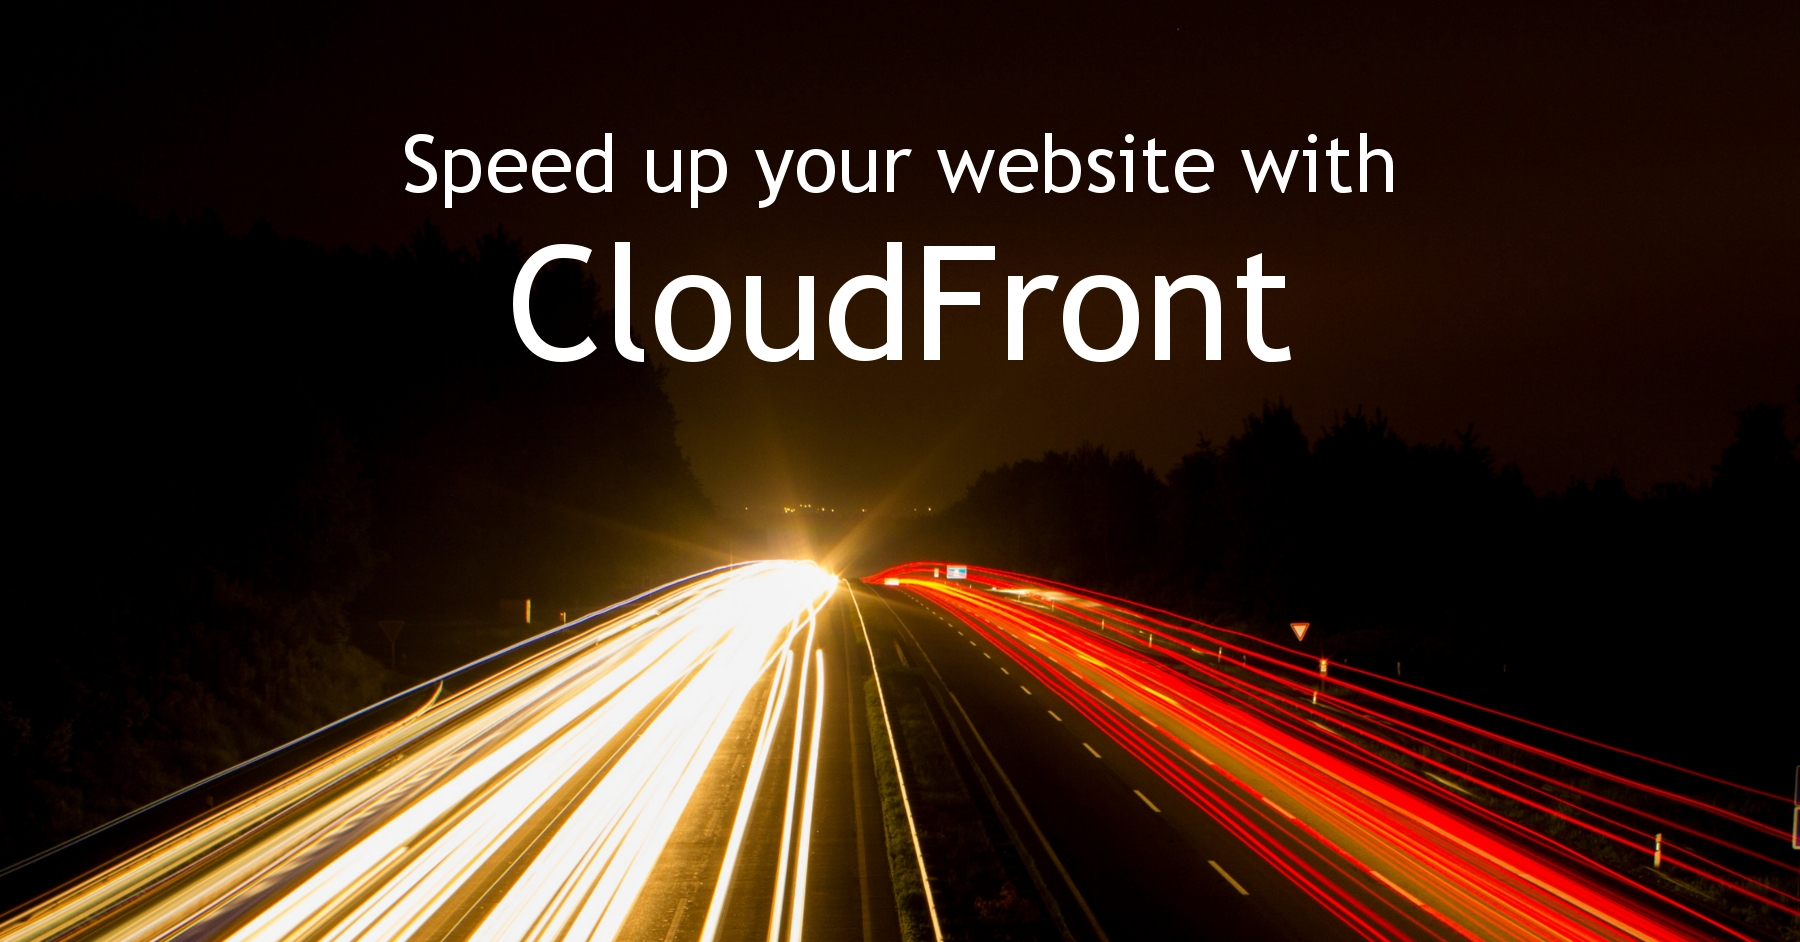 Speed up your website with CloudFront